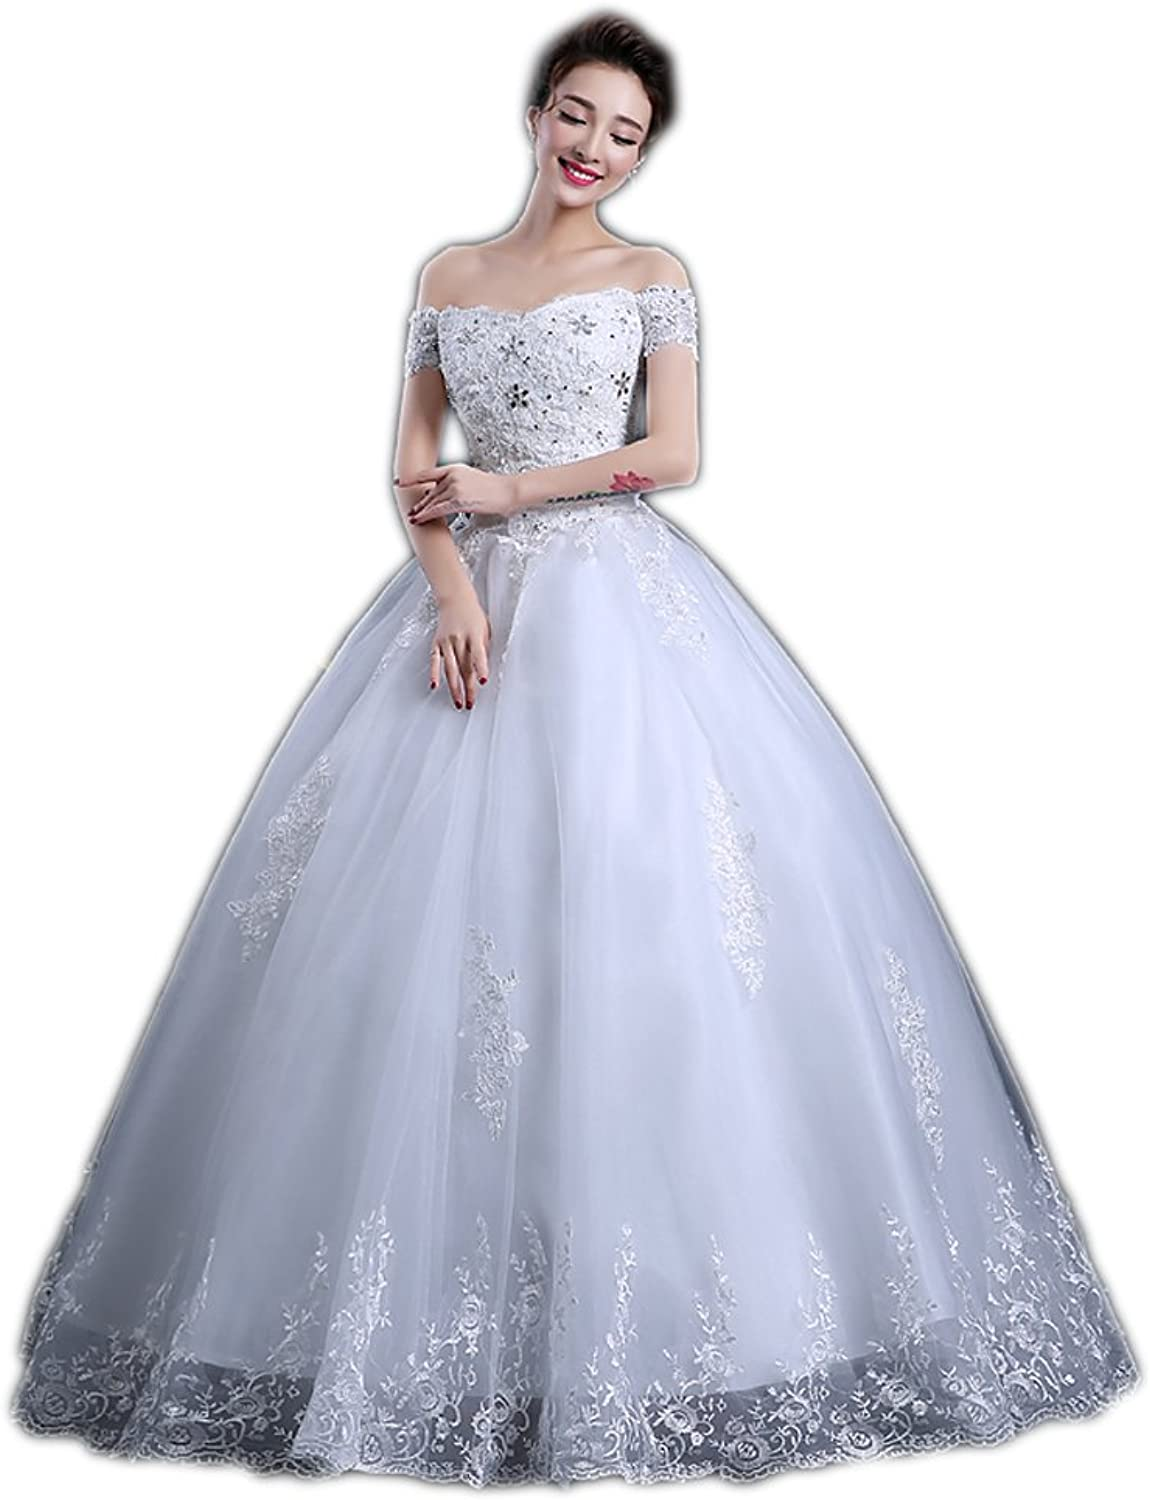 AK Beauty Women's Lace Up Crystal Appliques Ball Gown Wedding Dress